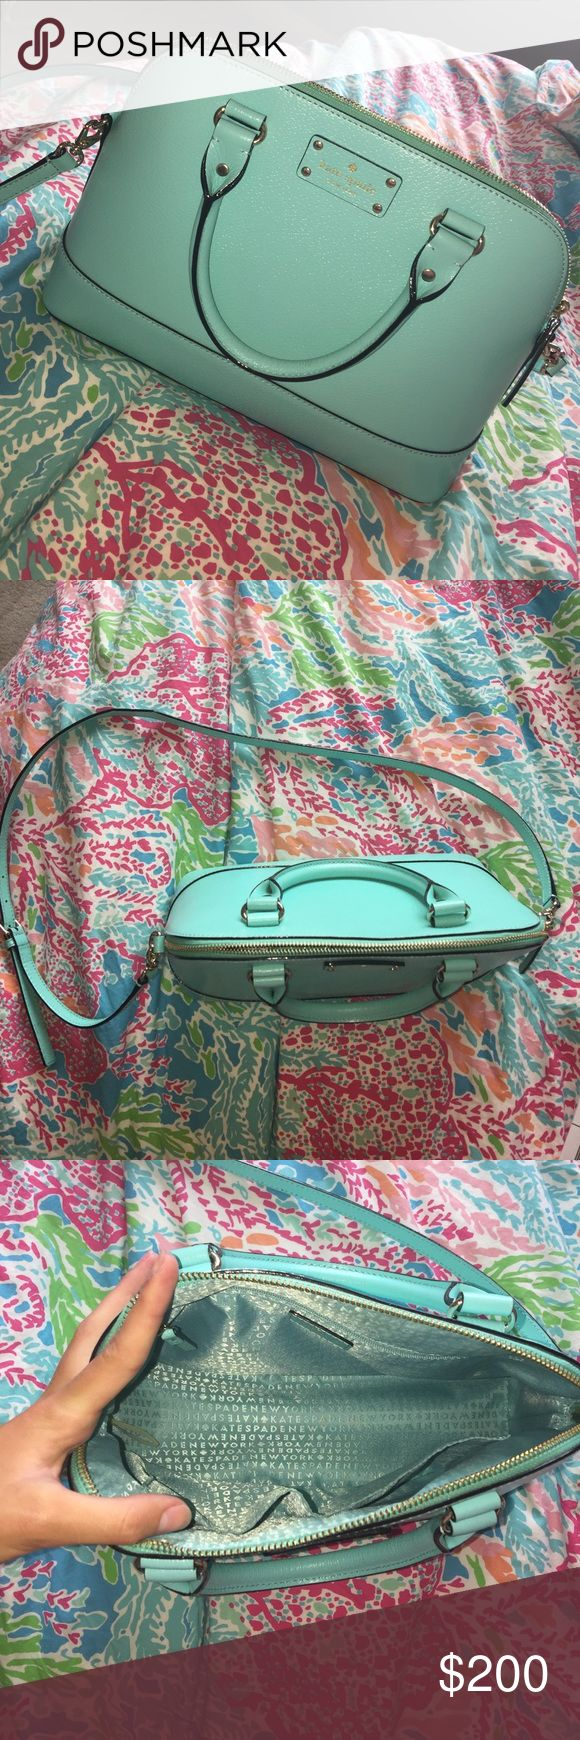 Kate spade large teal purse Beautiful and new condition kate spade bag! Purchased last summer but I have decided I would rather have a kate spade tote instead! Great condition zero flaws TRADES WELCOME kate spade Bags Shoulder Bags